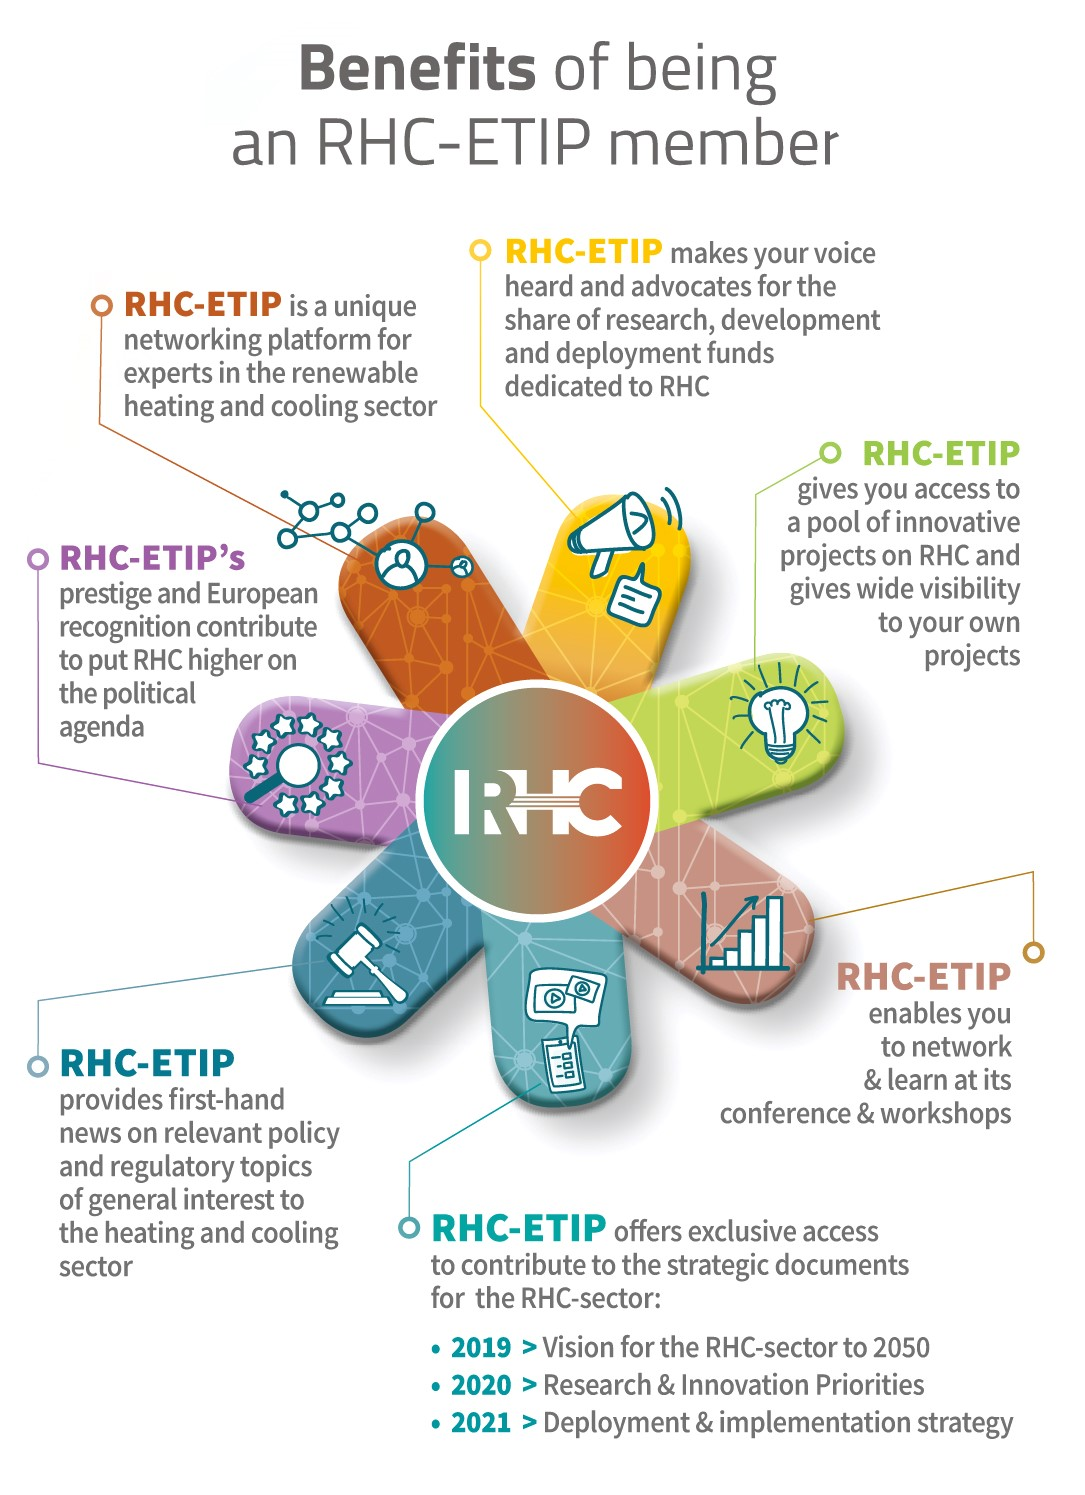 Benefits of being an RHC-ETIP member